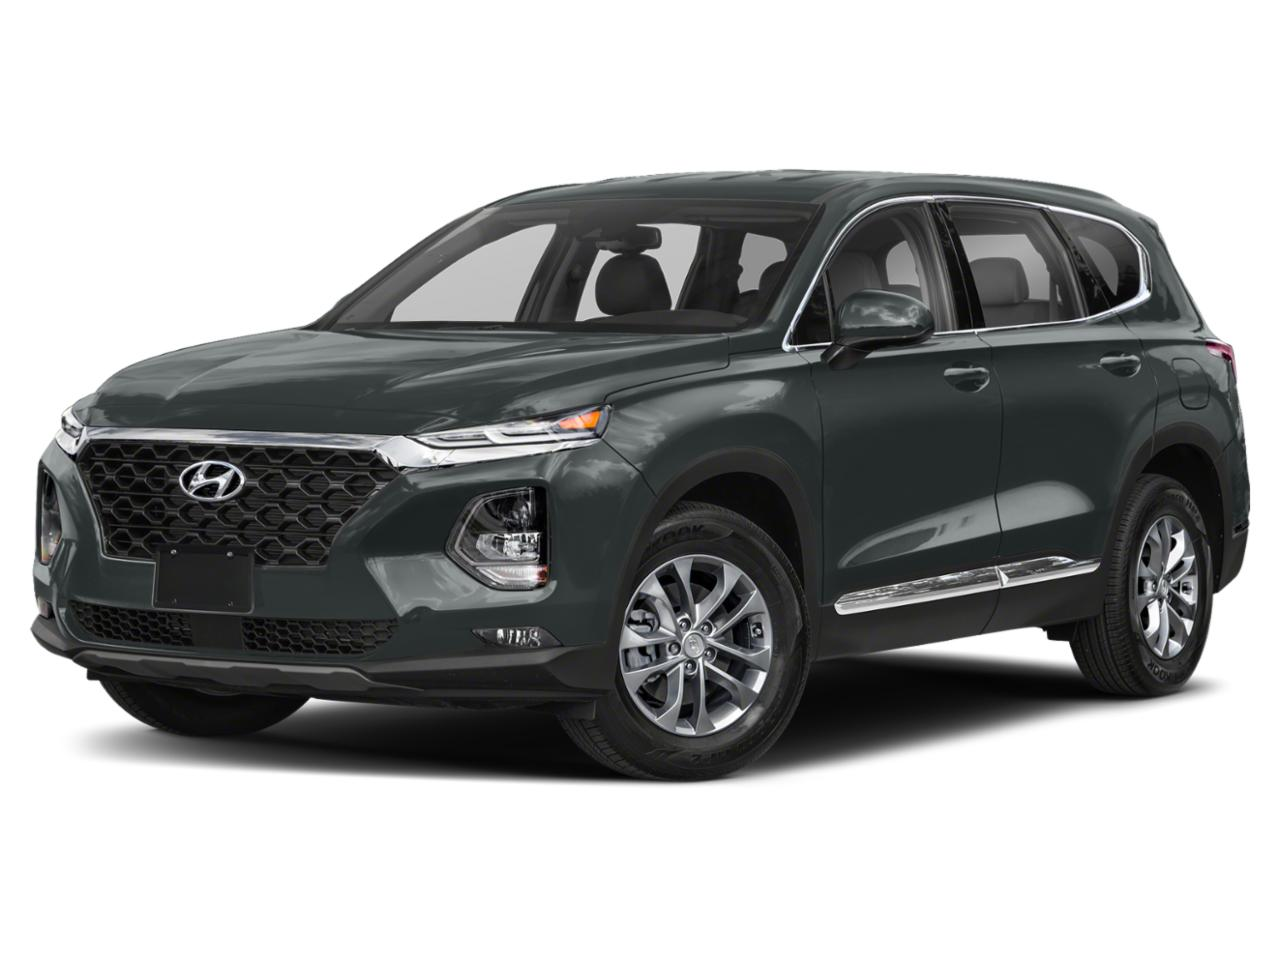 2019 Hyundai Santa Fe Vehicle Photo in Quakertown, PA 18951